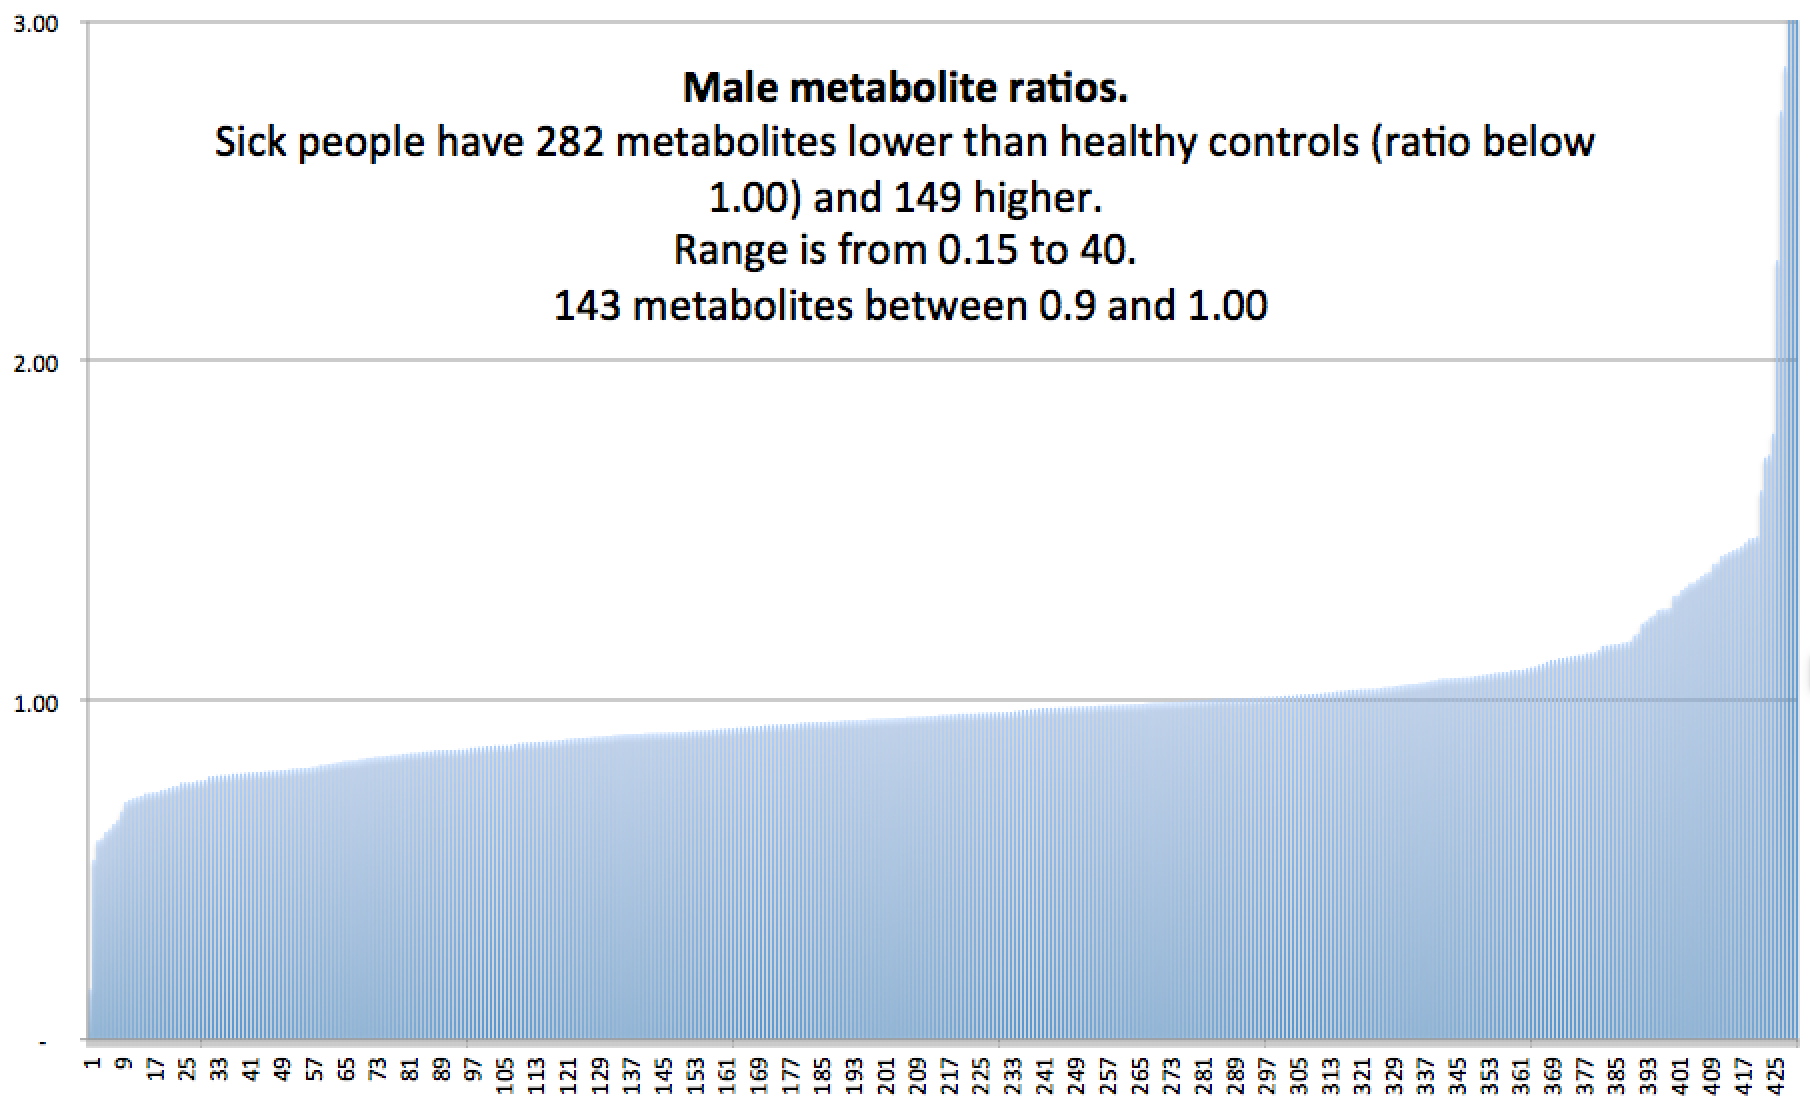 Male metabolite ratios.png